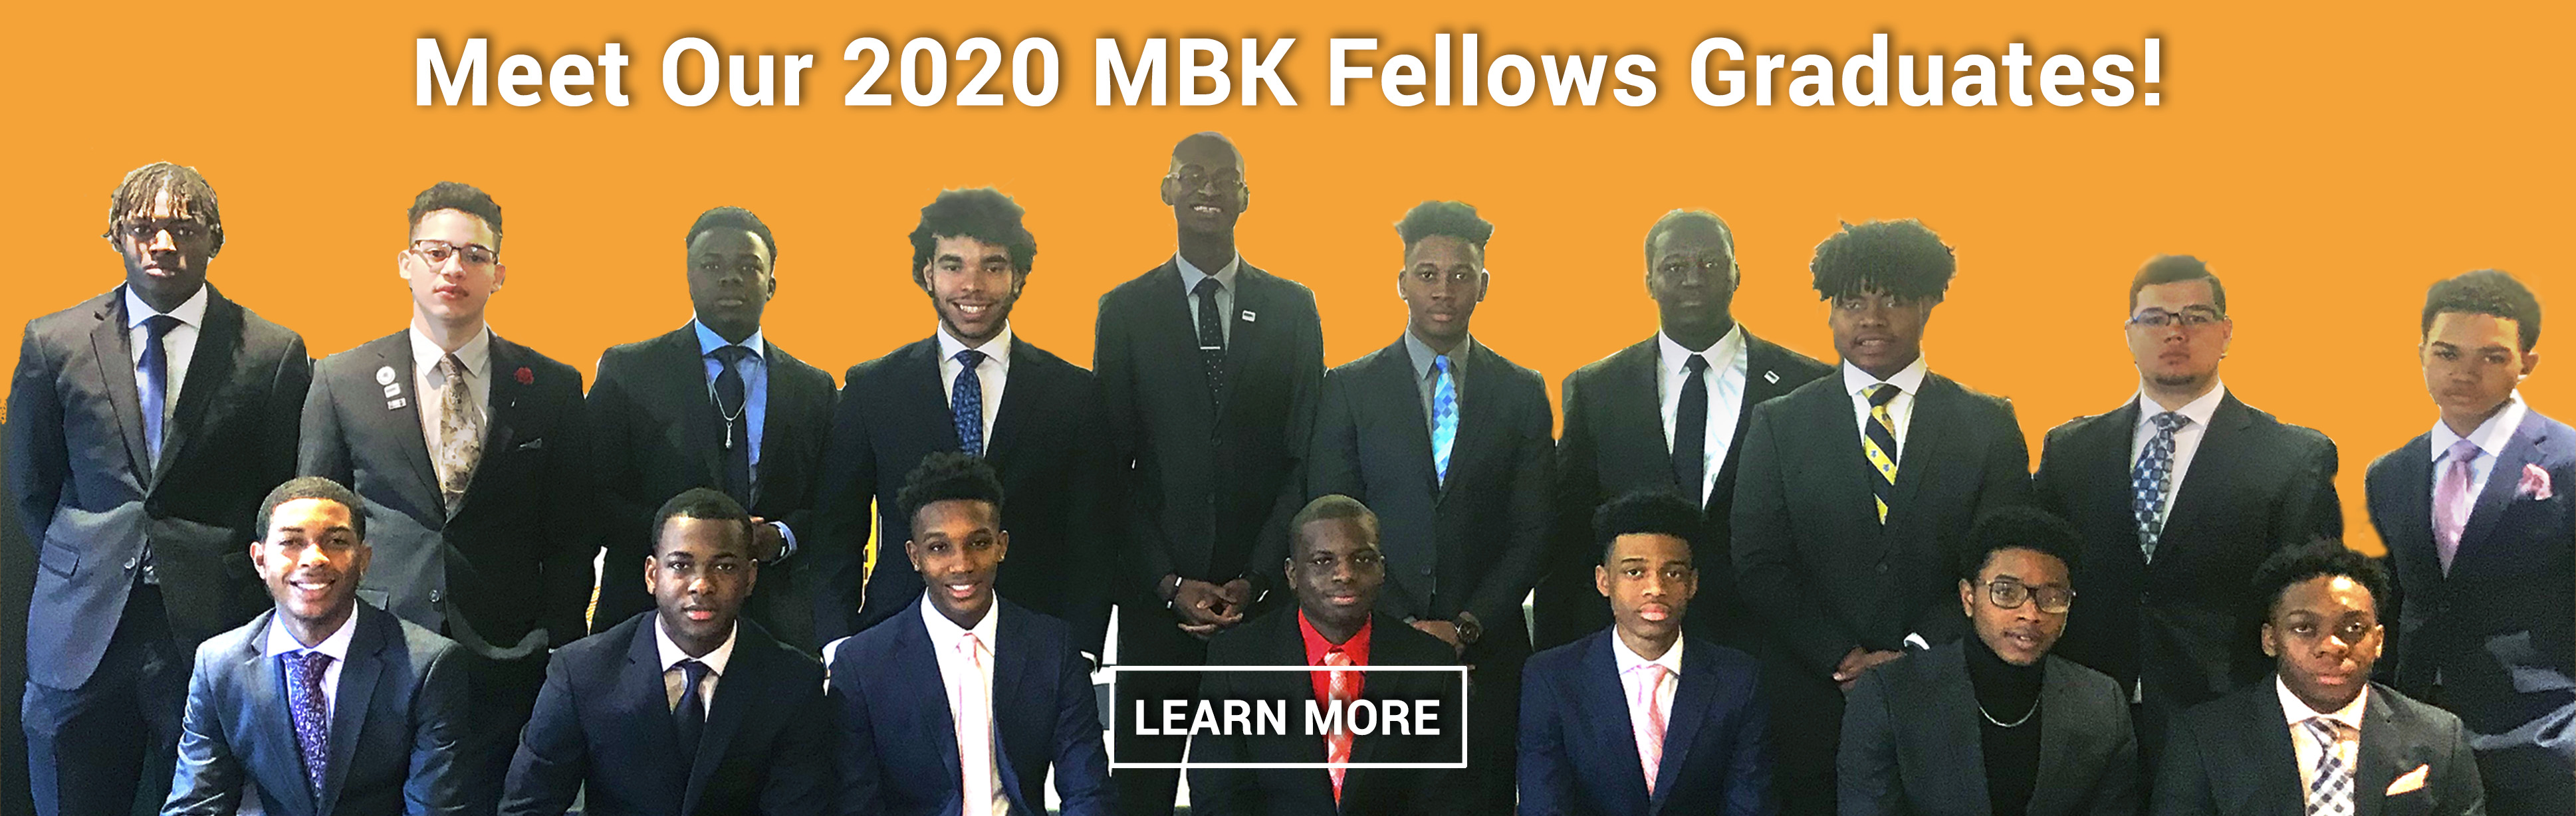 2020-Fellows-Slider-for-MBK-Site-4